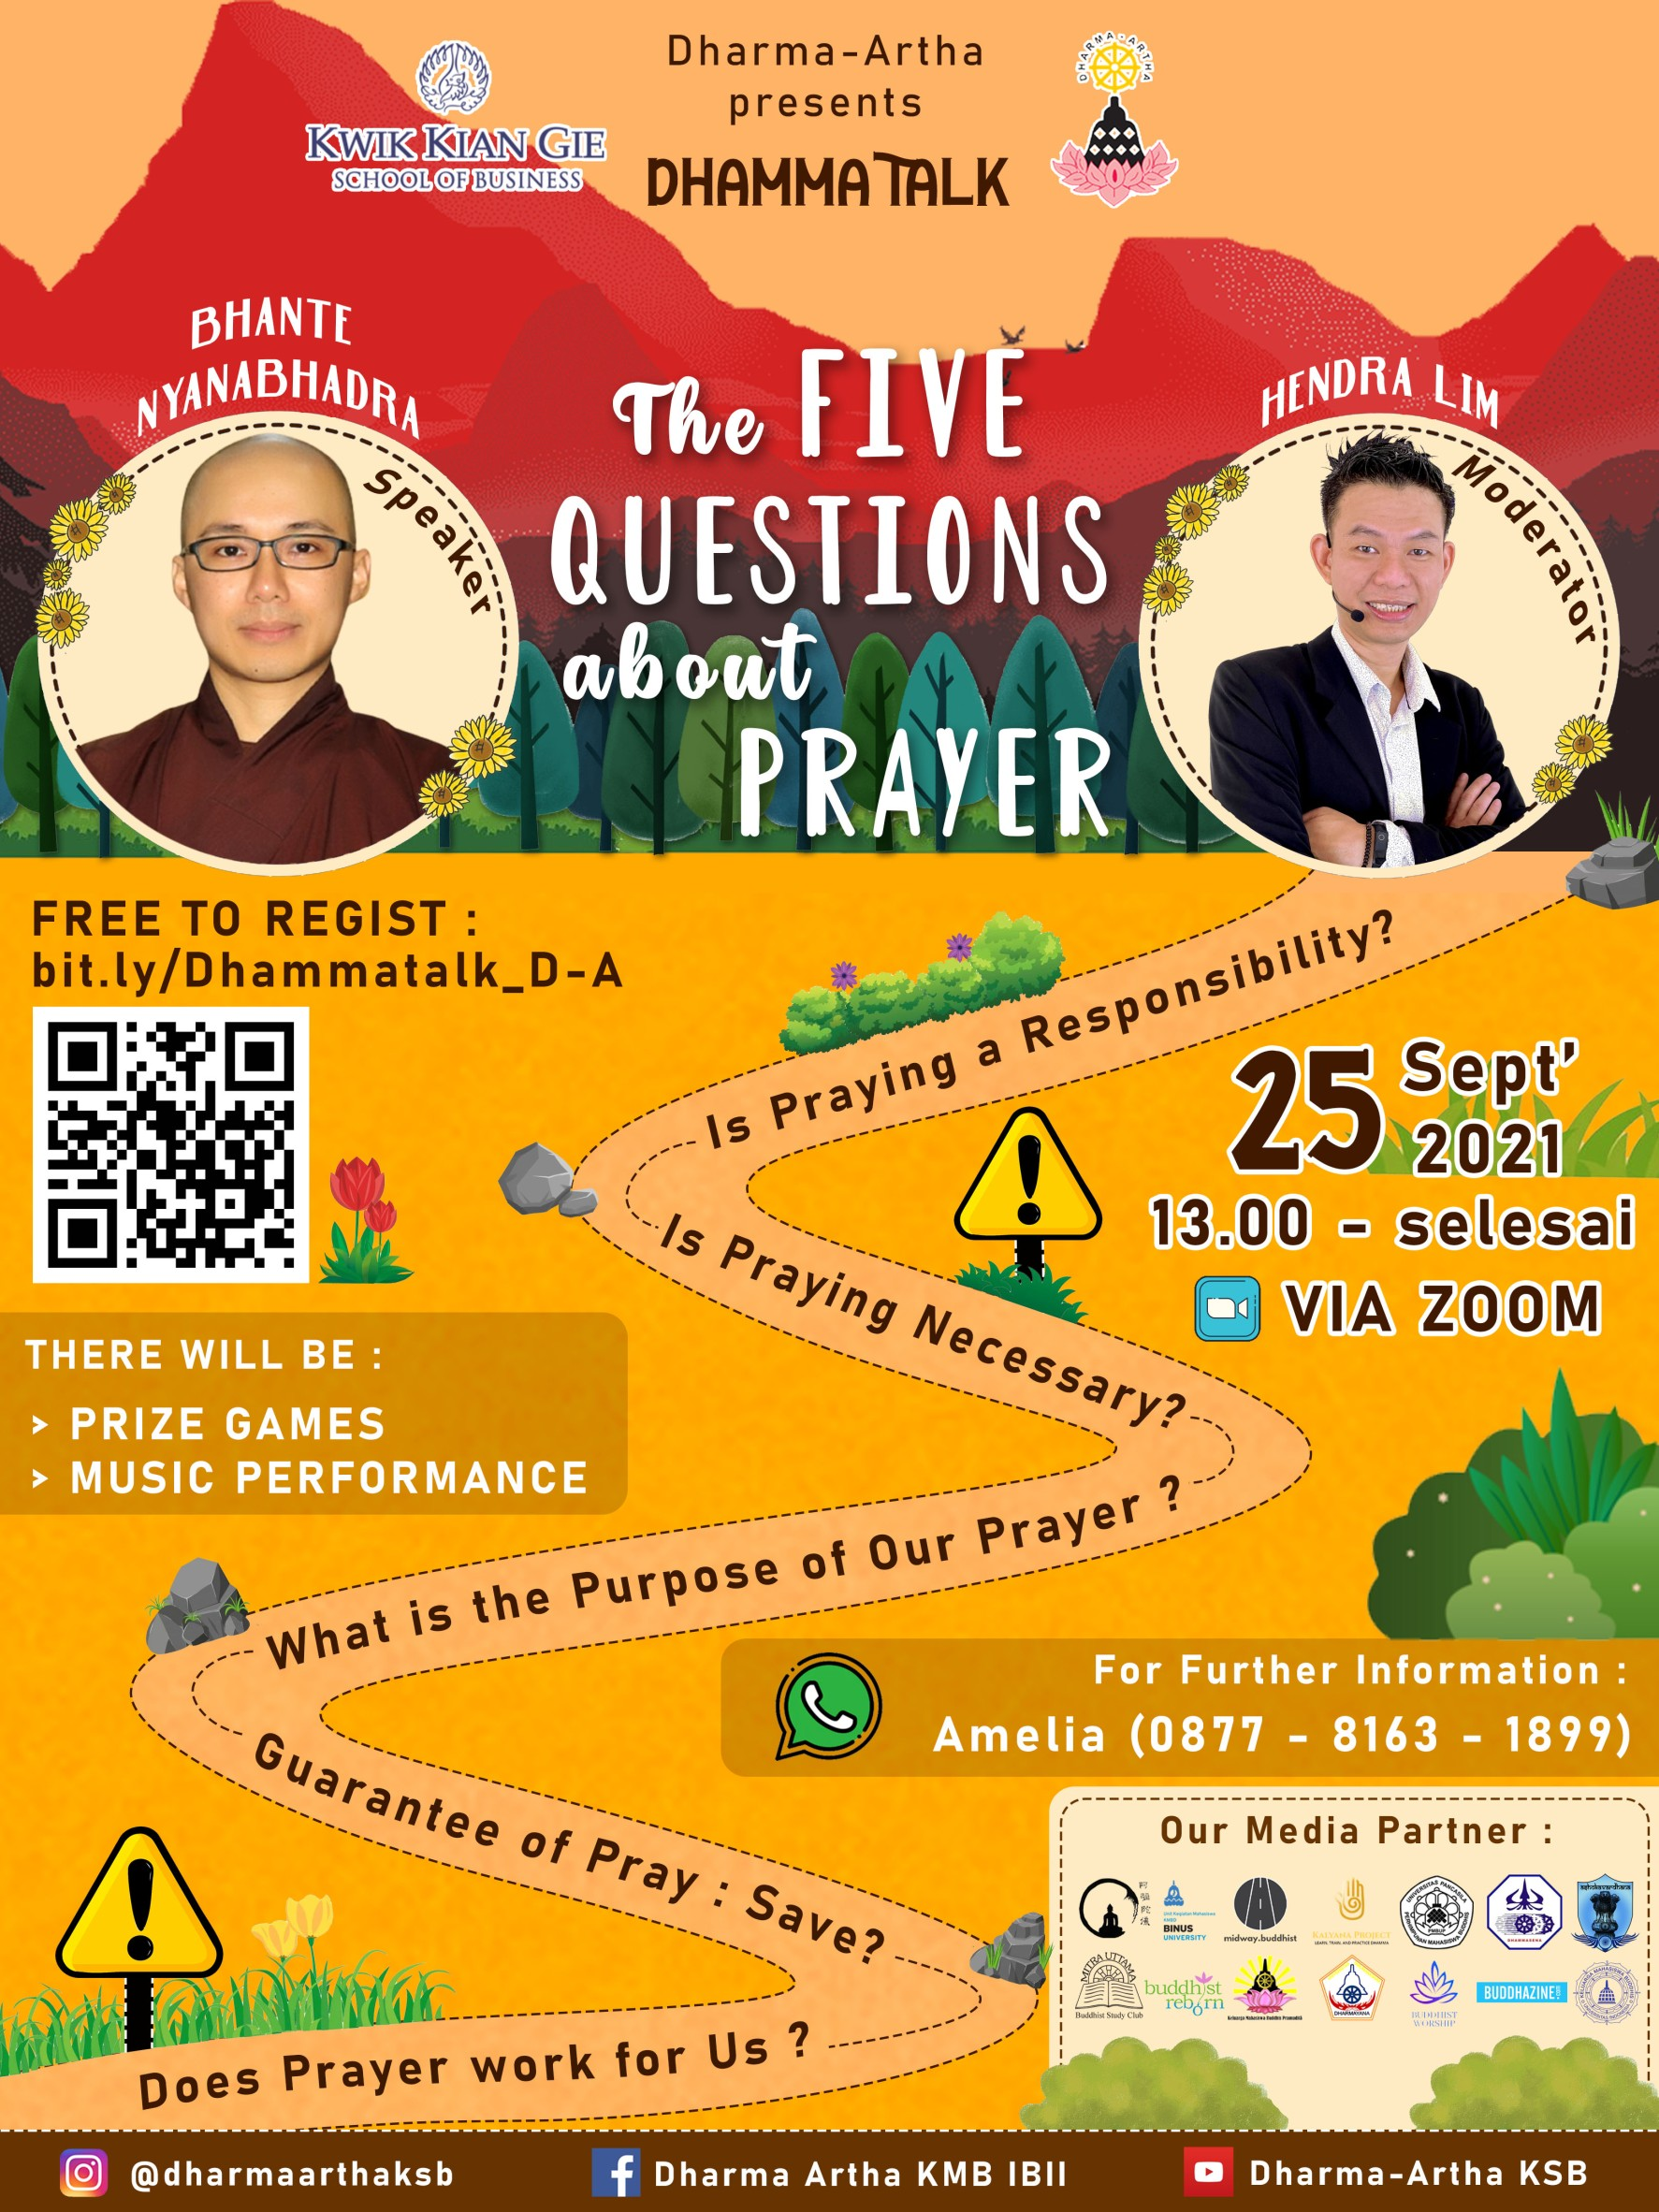 The Five Questions about Prayer